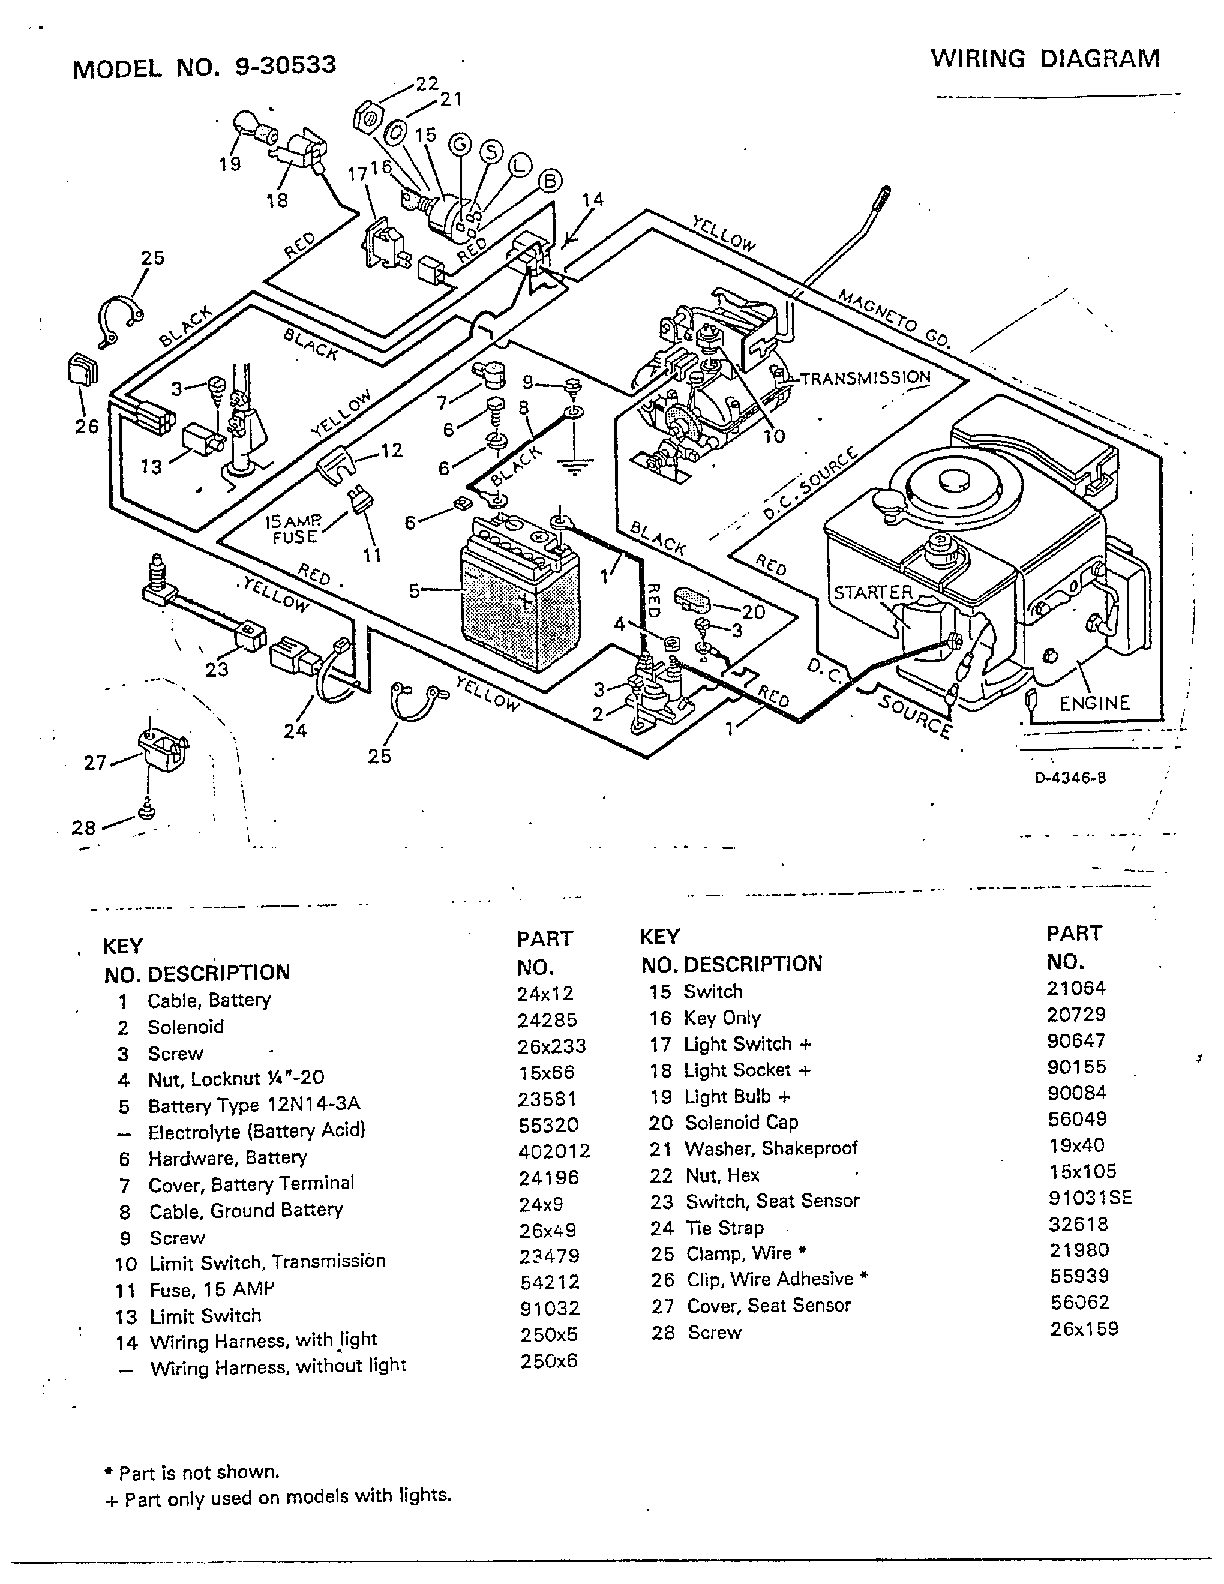 WL000265 00013?resize=665%2C861 electrical wiring diagram murray riding mower model 405011x92a  at gsmx.co